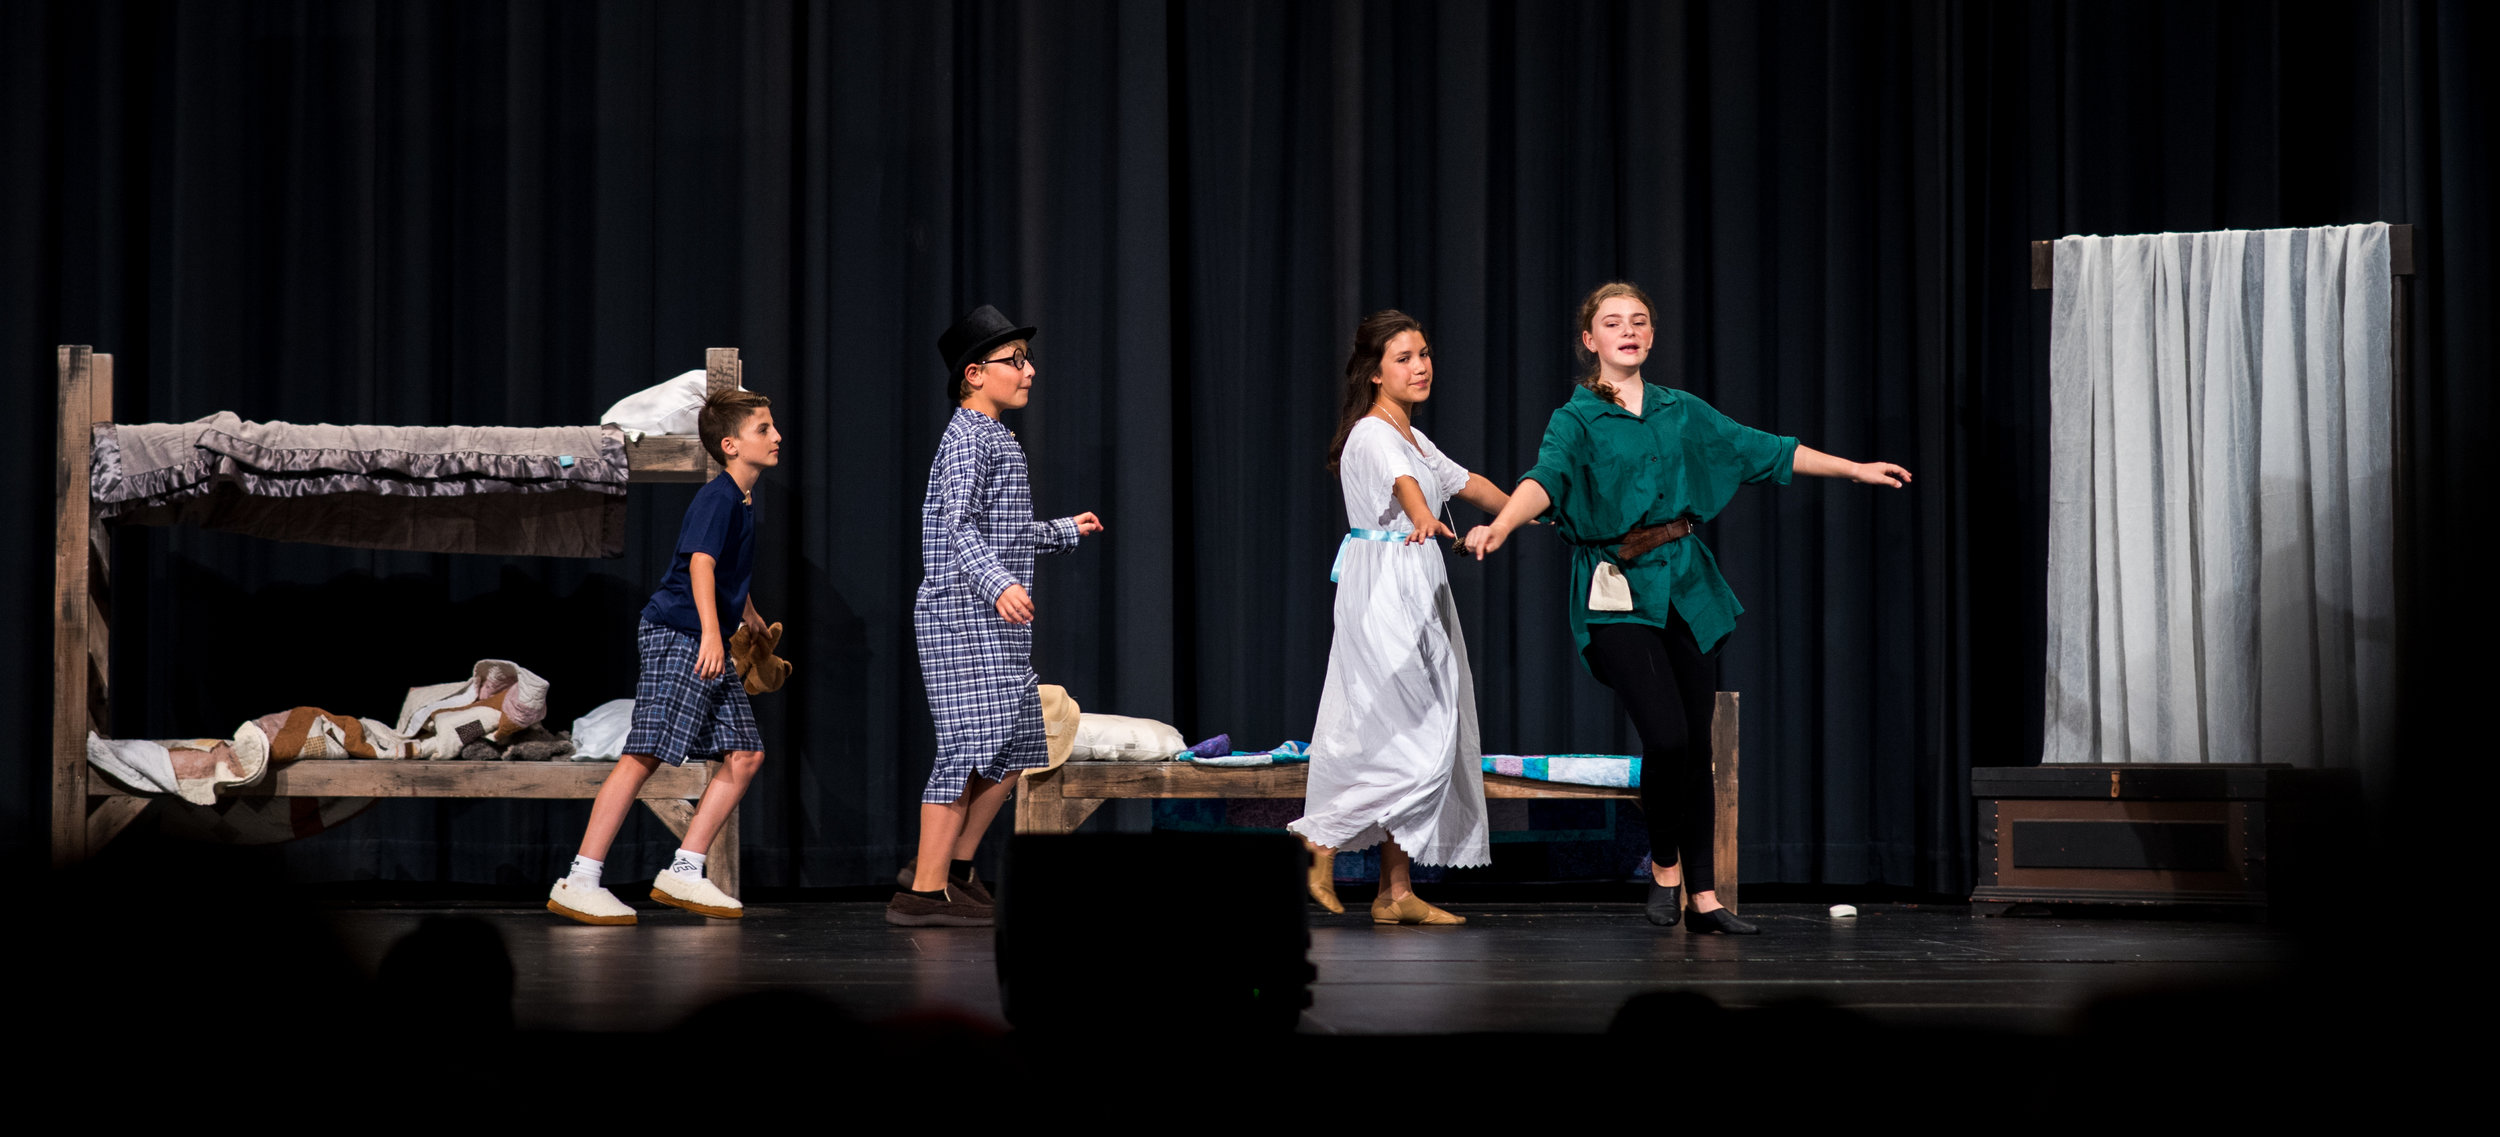 On the cover: from left Jackson Martin (Michael) Nicholas Dreier (John) Helena Lundberg (Wendy) follow Peter Pan played by Lauren Dolezal into flight and off to Neverland.